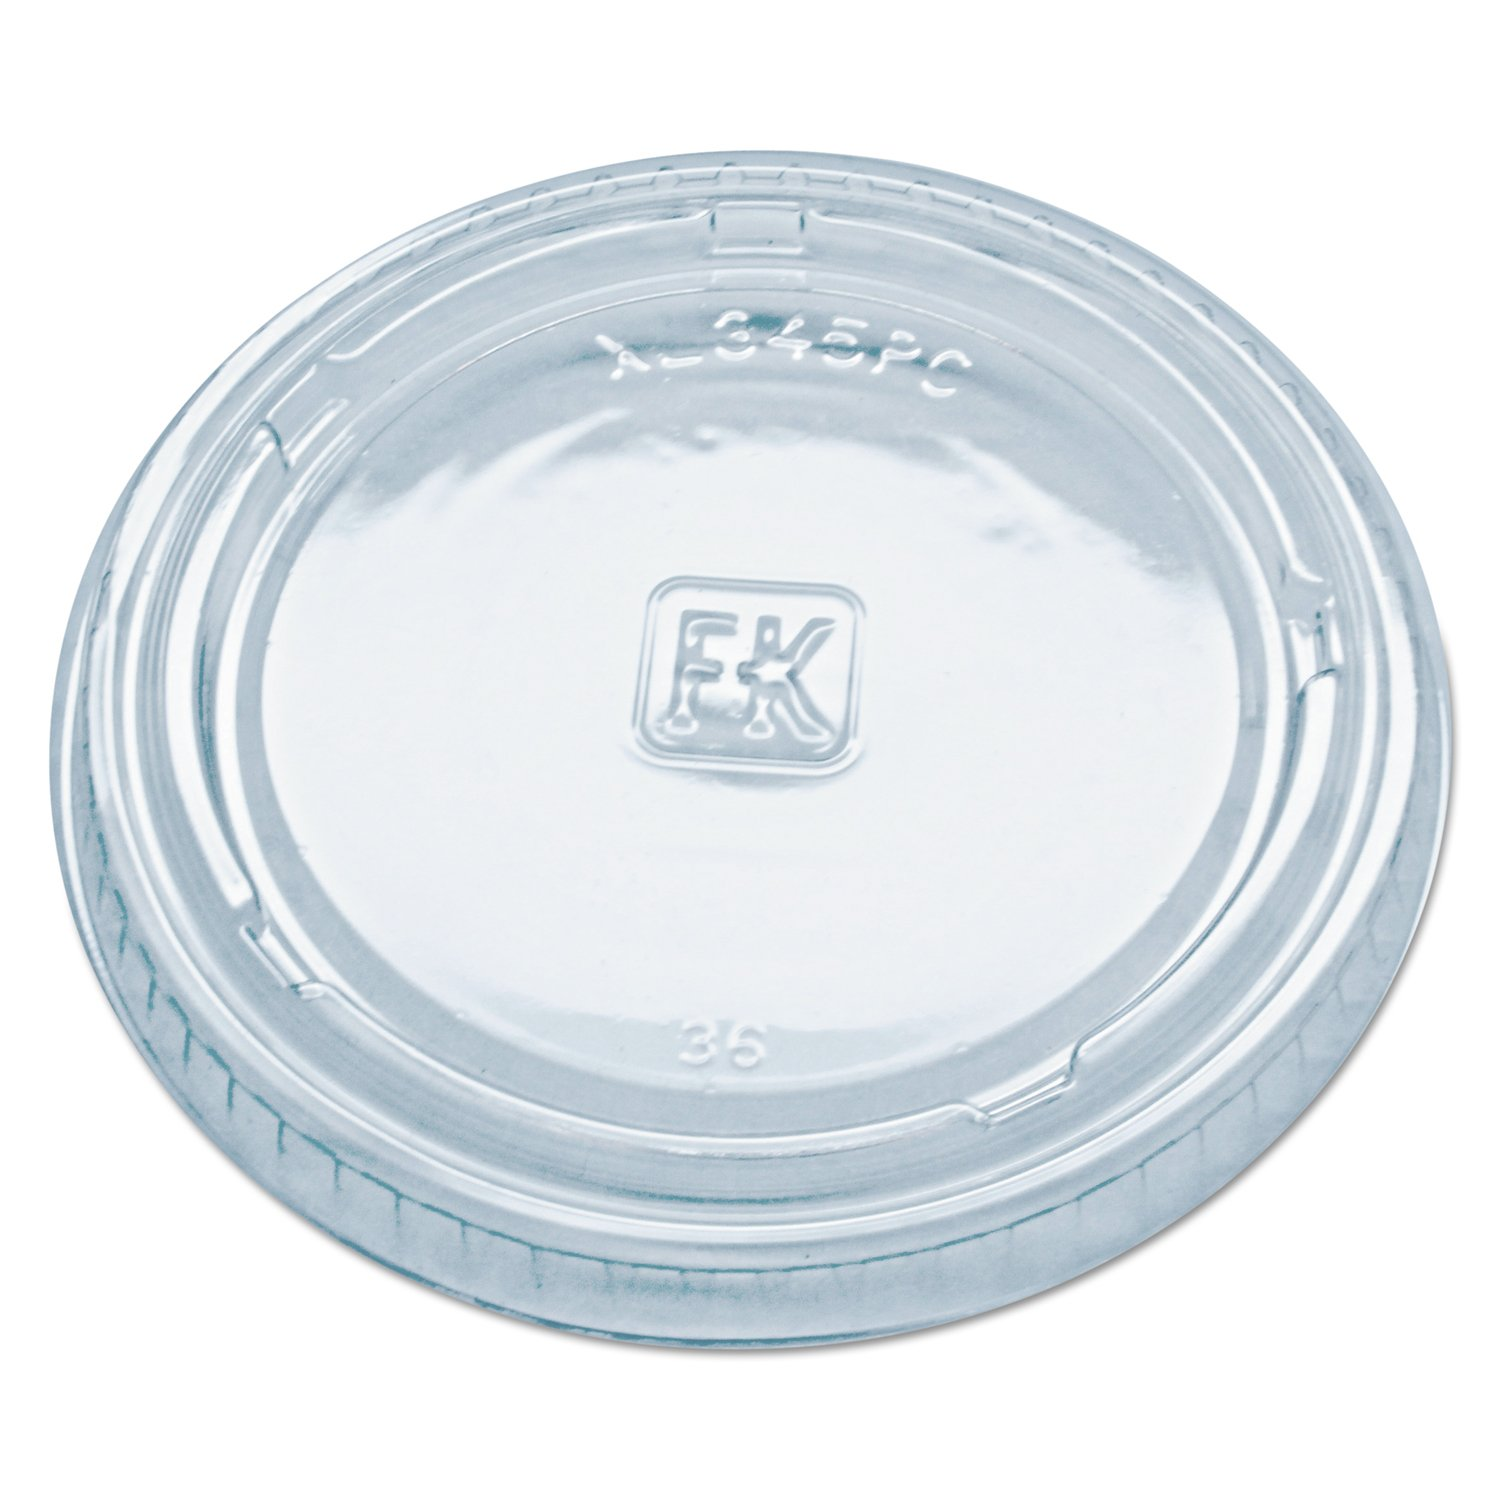 Fabri-Kal XL345PC Clear Polyethylene Terephthalate Lid for 3.25 4 5.5-Ounce Portion Cup (Case of 2500) by Fabri-Kal